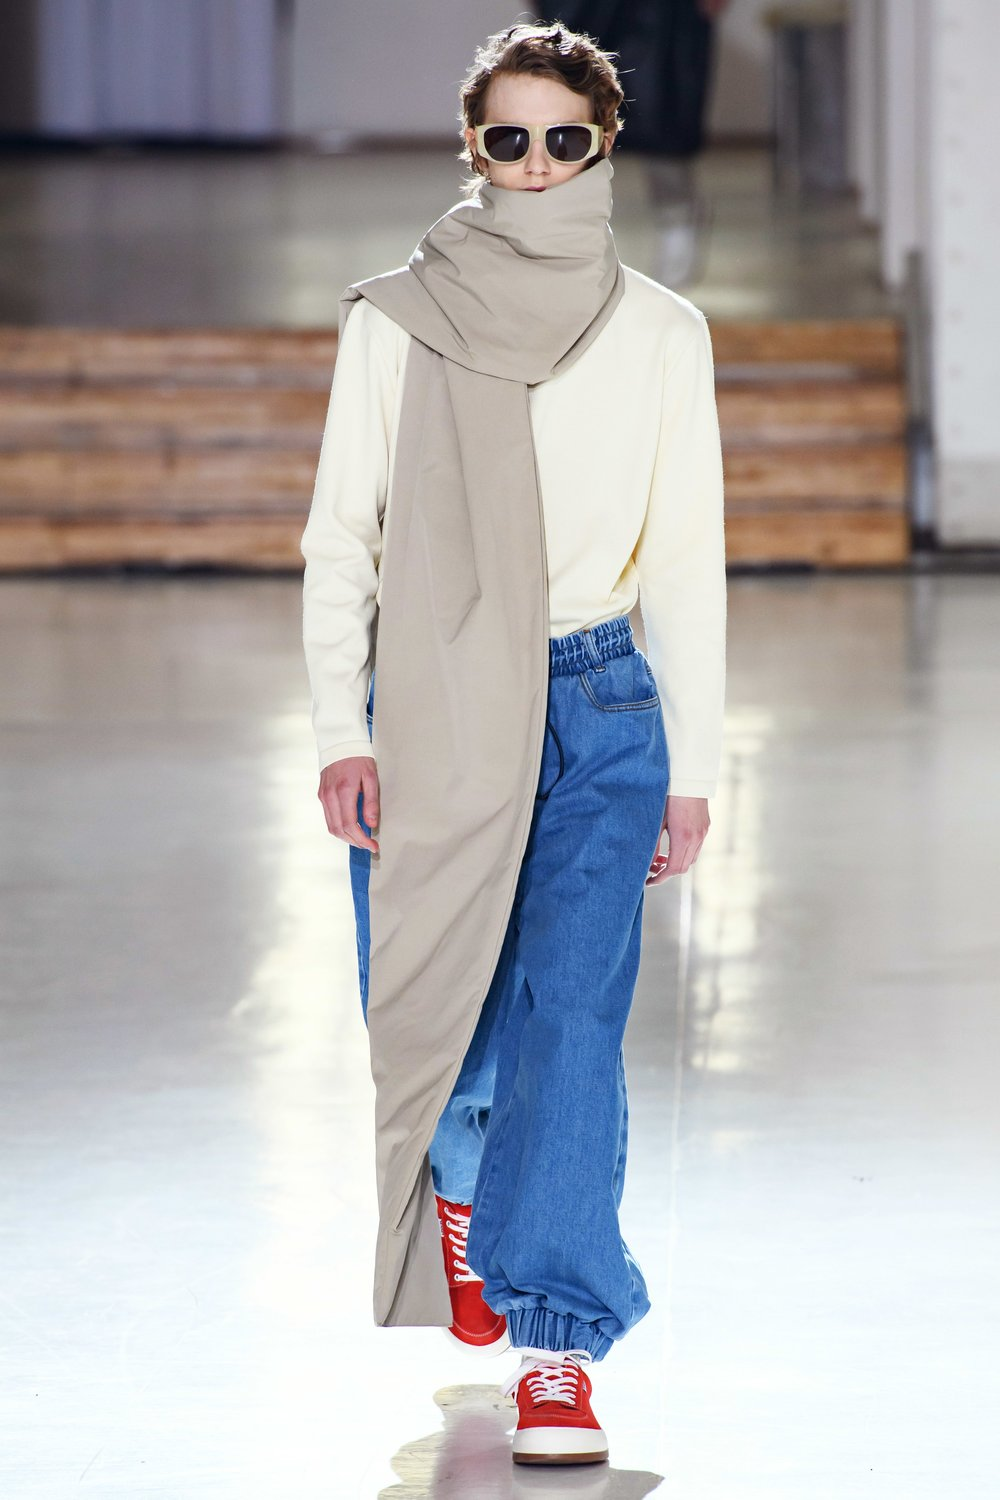 Scarves - Oversized and extra long - Sunnei